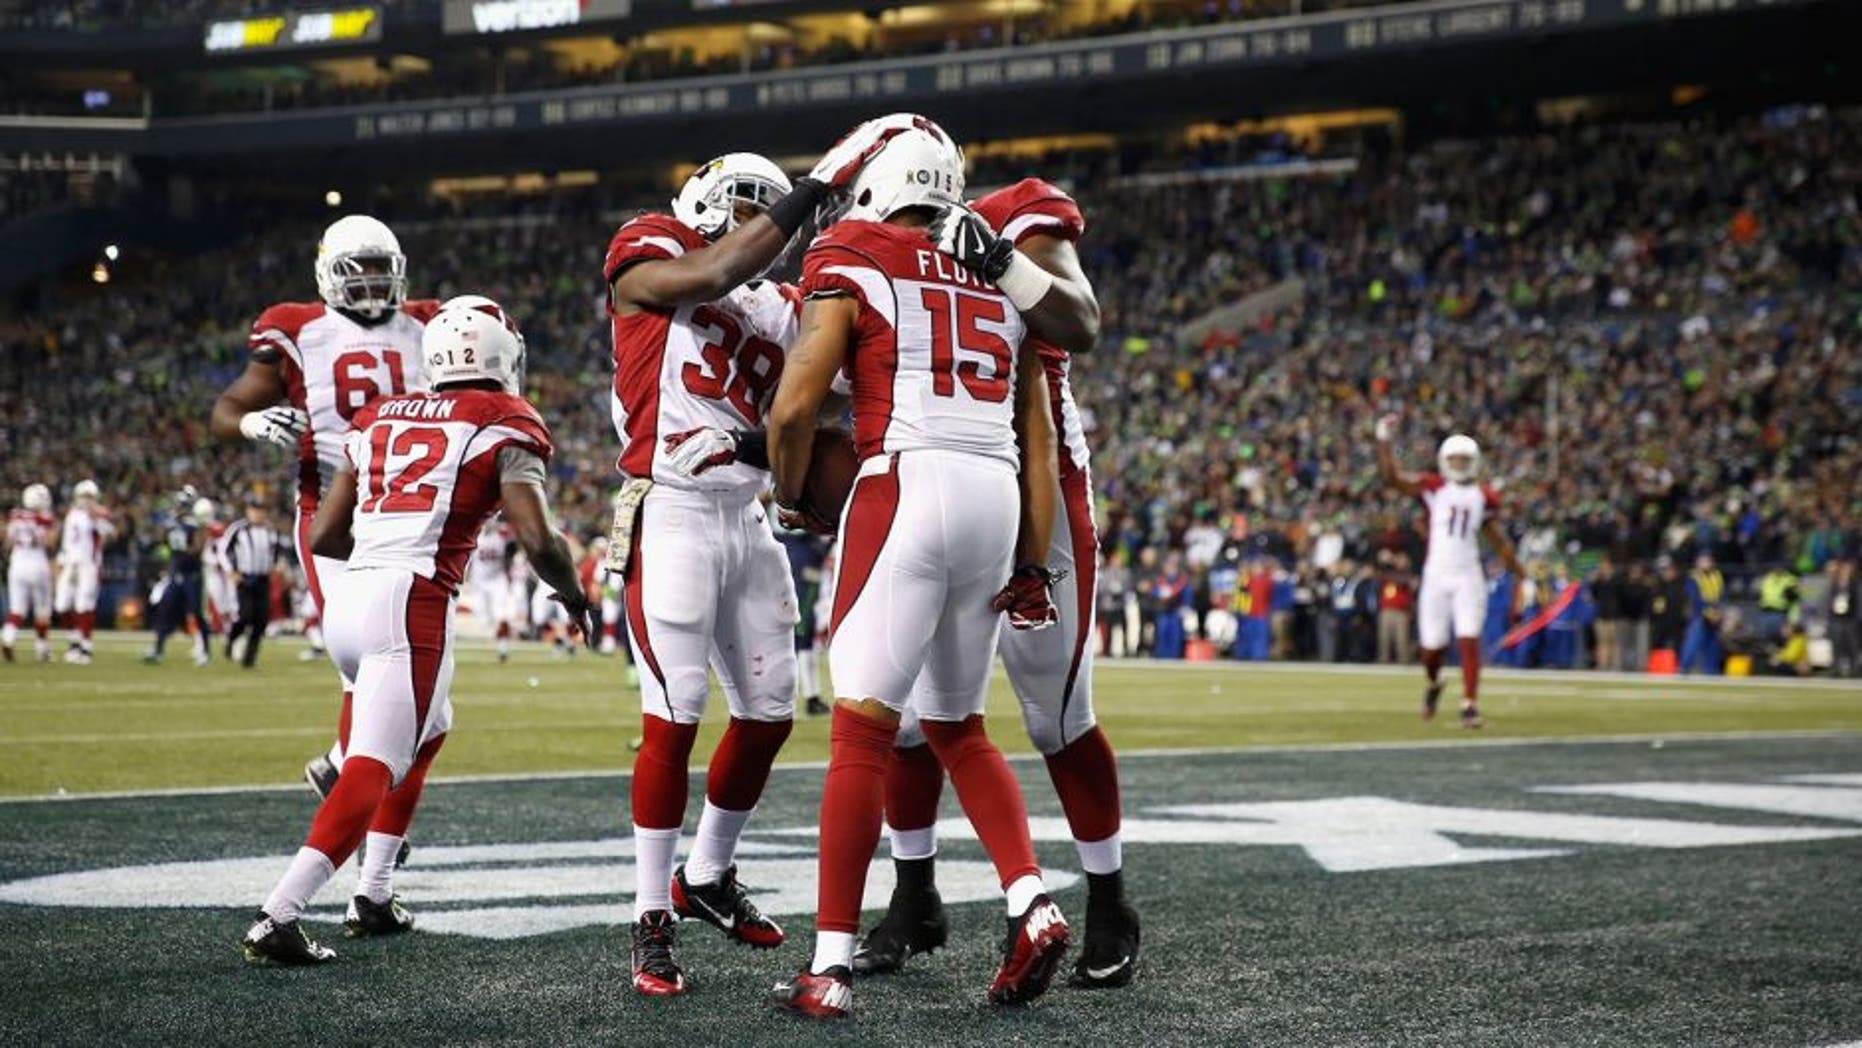 SEATTLE, WA - NOVEMBER 15: Michael Floyd #15 of the Arizona Cardinals celebrates with teammates in the end zone after scoring a touchdown during the second quarter against the Seattle Seahawks at CenturyLink Field on November 15, 2015 in Seattle, Washington. (Photo by Otto Greule Jr/Getty Images)